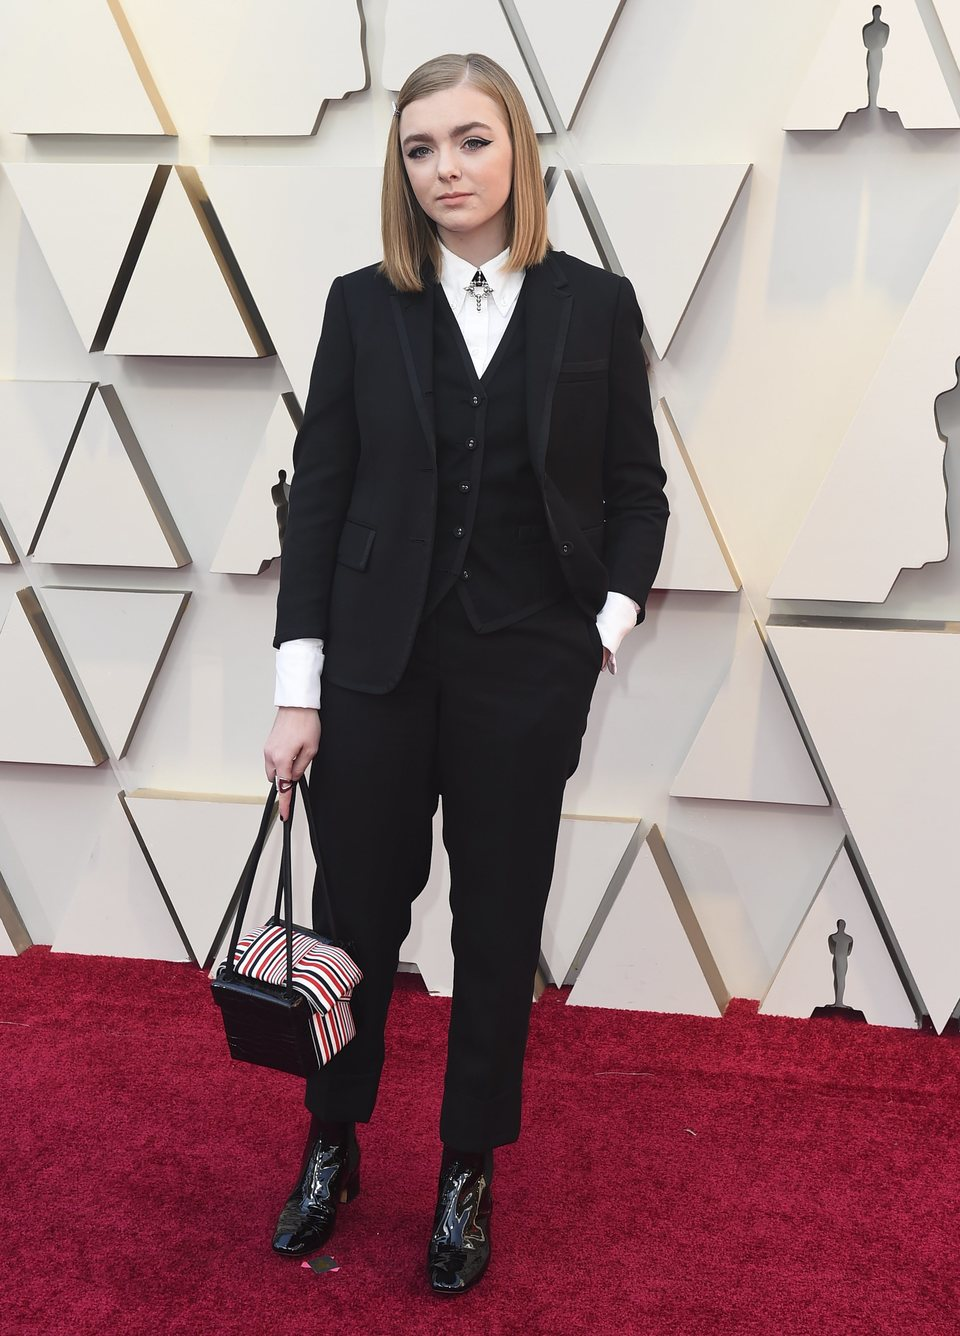 Elsie Fisher at the Oscars 2019 red carpet